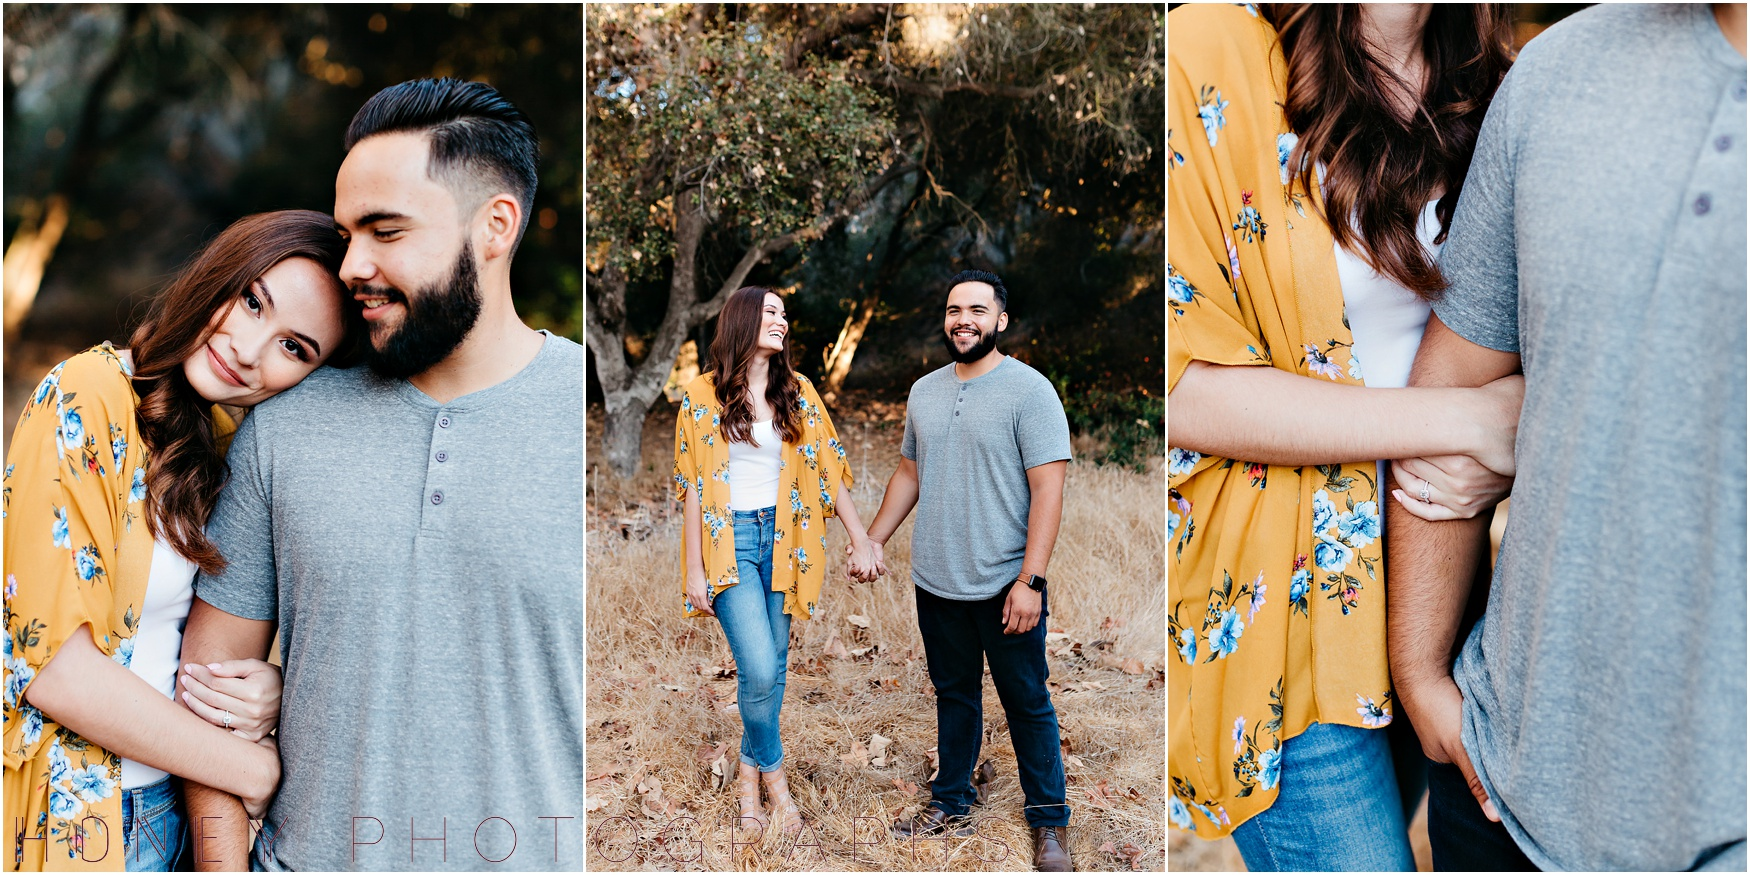 marian_bear_sunset_woods_san_diego_engagement010.jpg